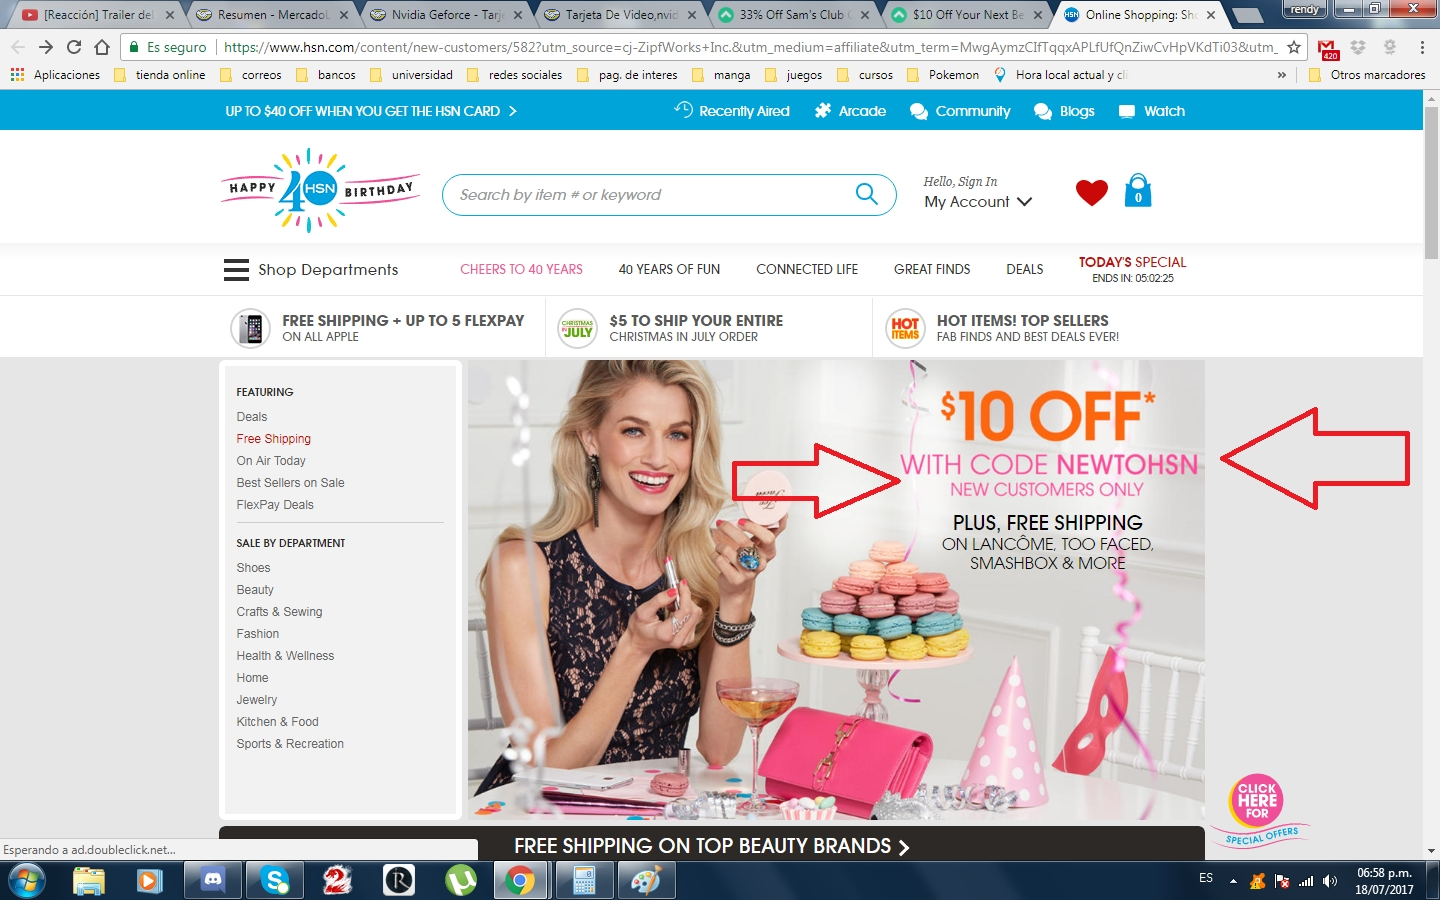 Hsn coupon code 20 off